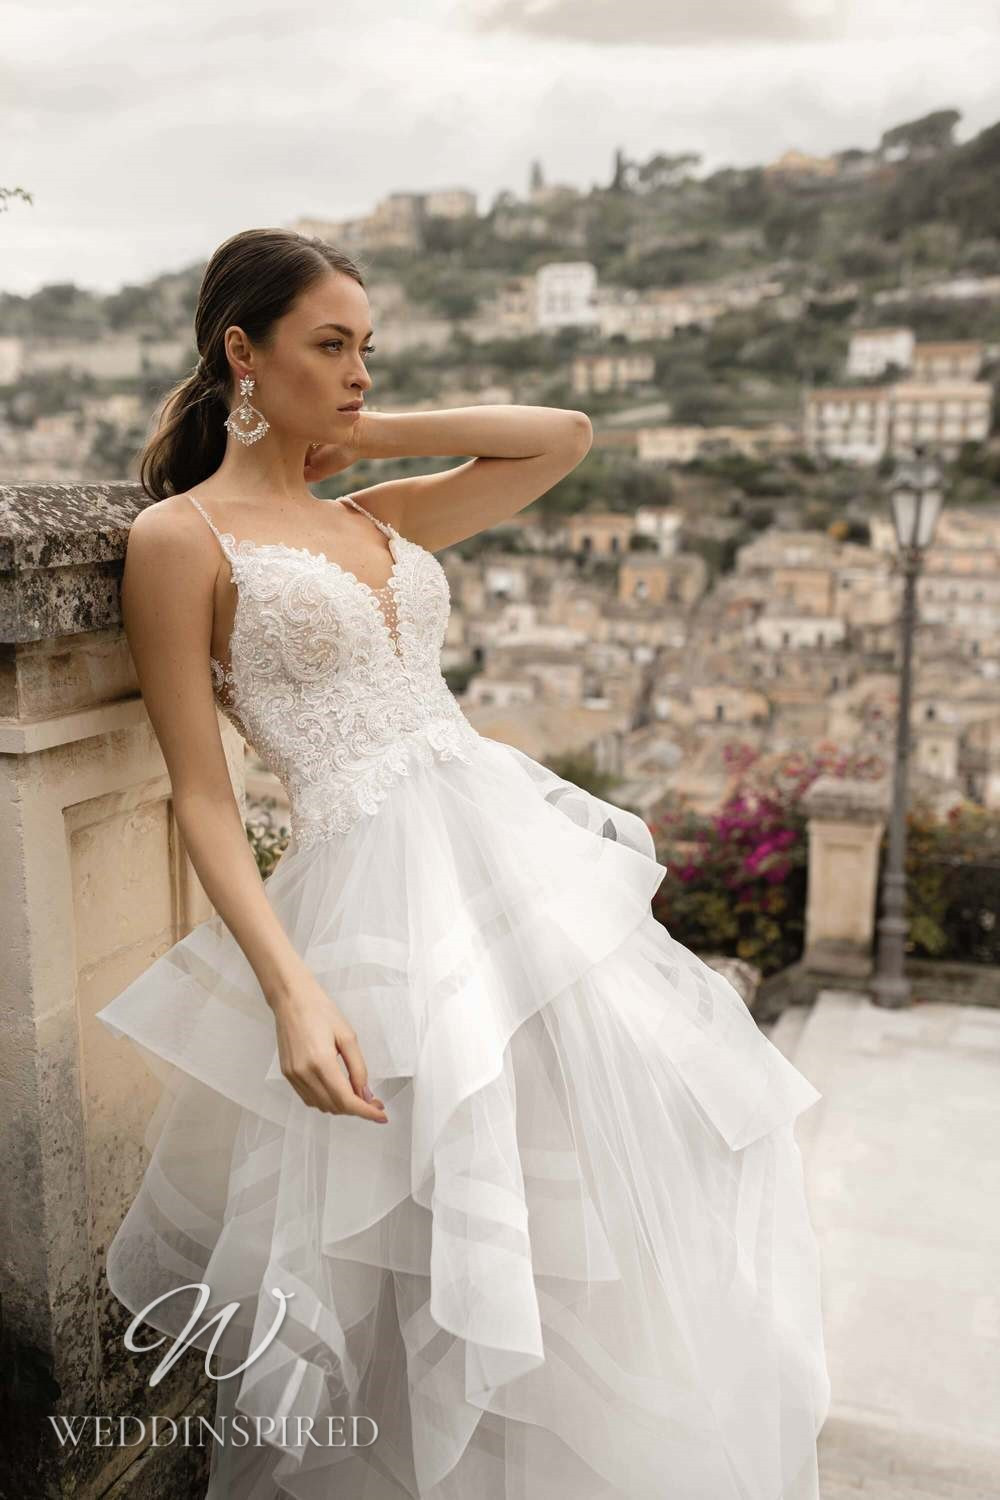 A Lussano 2021 lace and tulle A-line wedding dress with a layered ruffle skirt